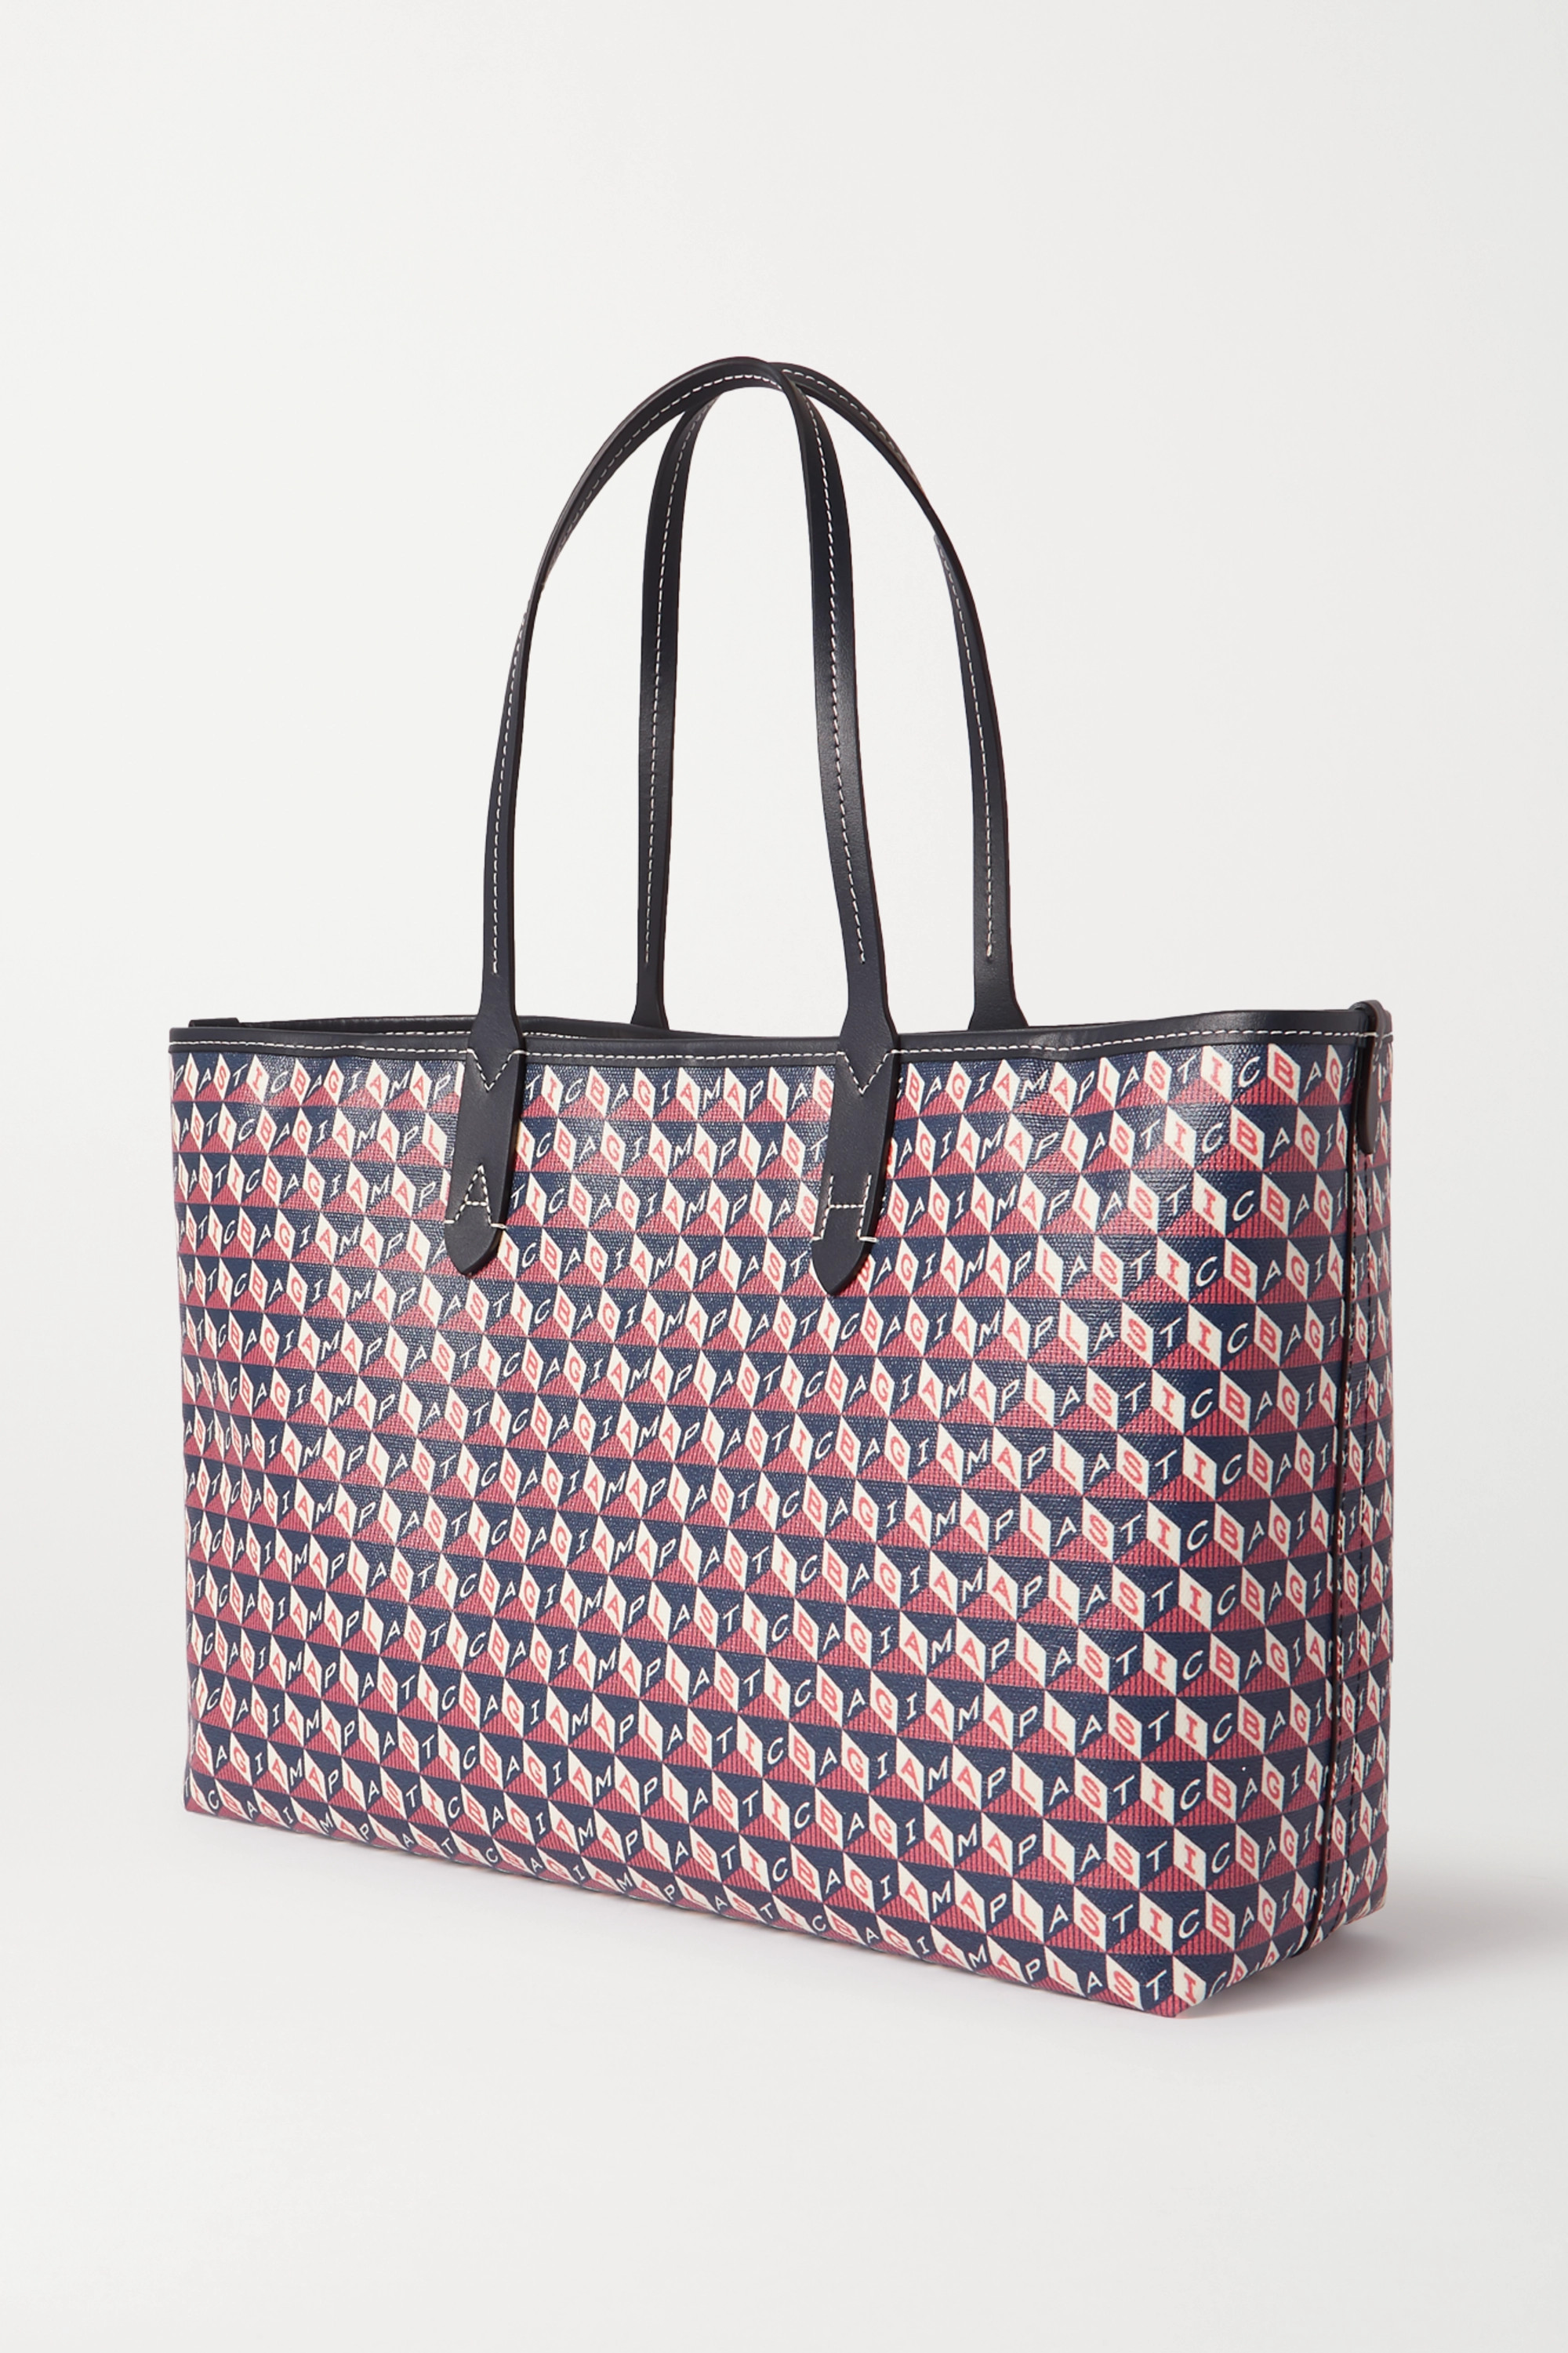 Anya Hindmarch I Am A Plastic Bag small appliquéd leather-trimmed printed coated-canvas tote